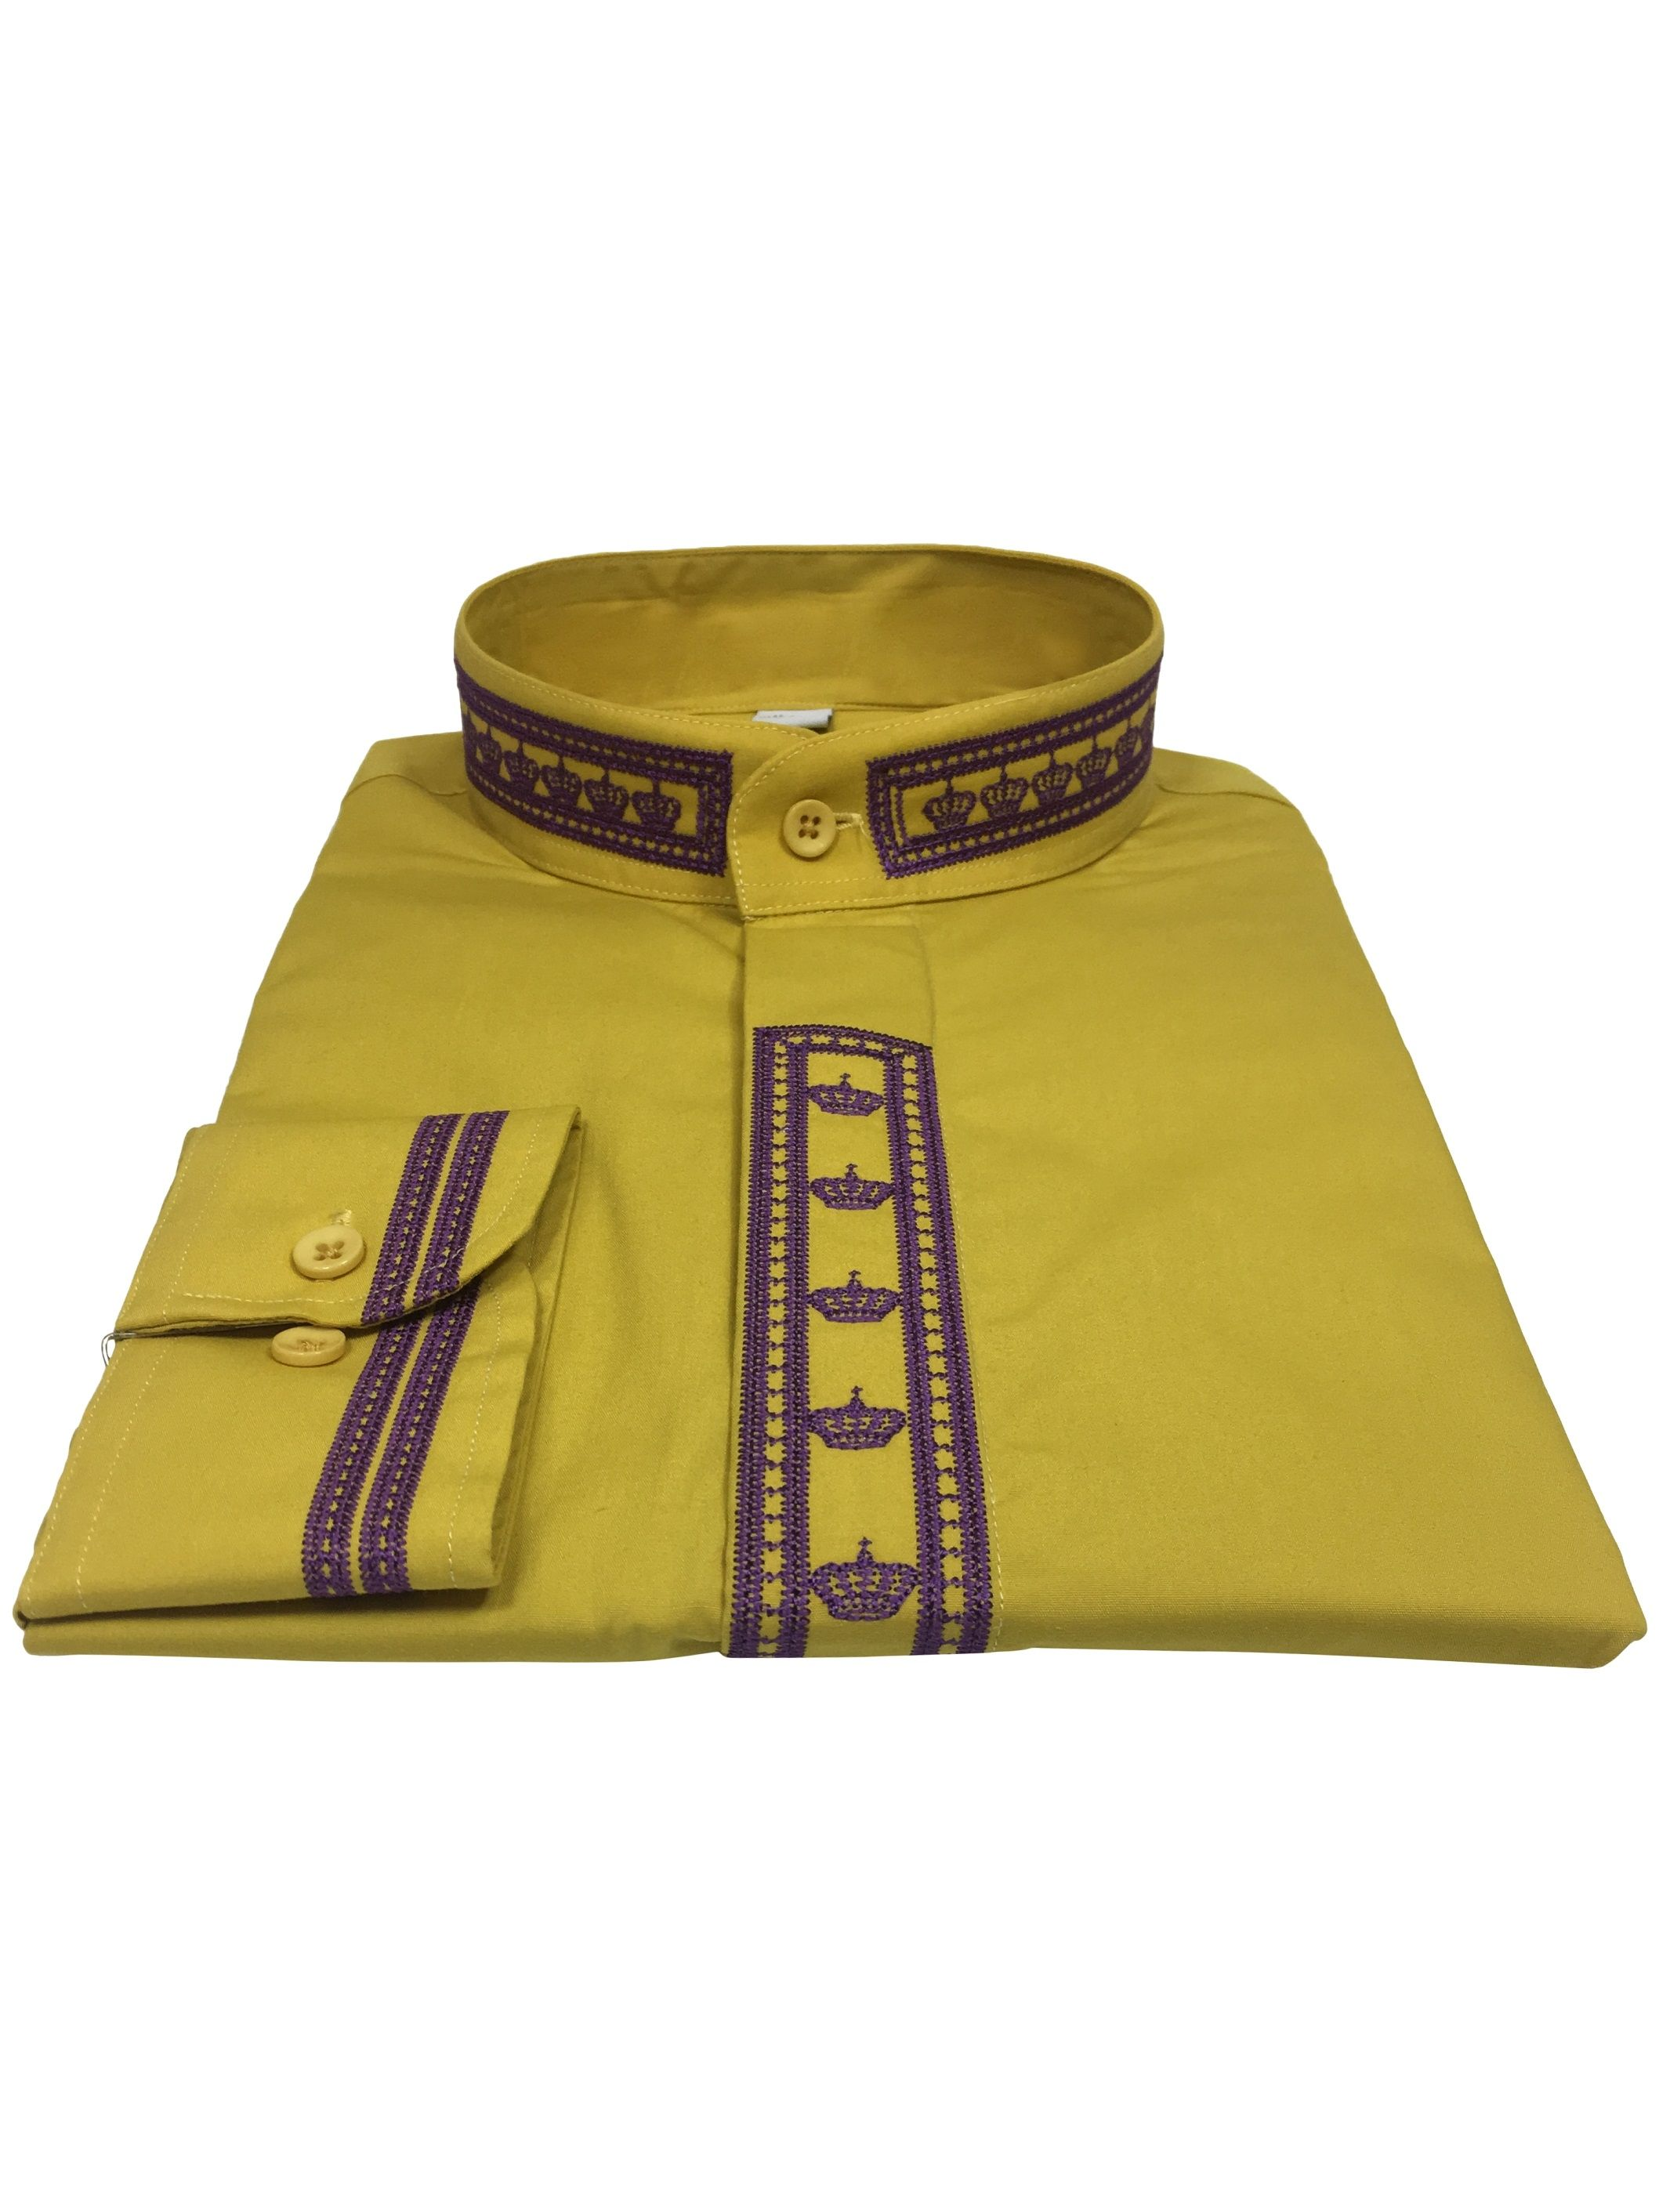 349. Men's Clergy Shirt With Rejoice Crown Fine Embroidery Long Sleeves- Gold/Purple